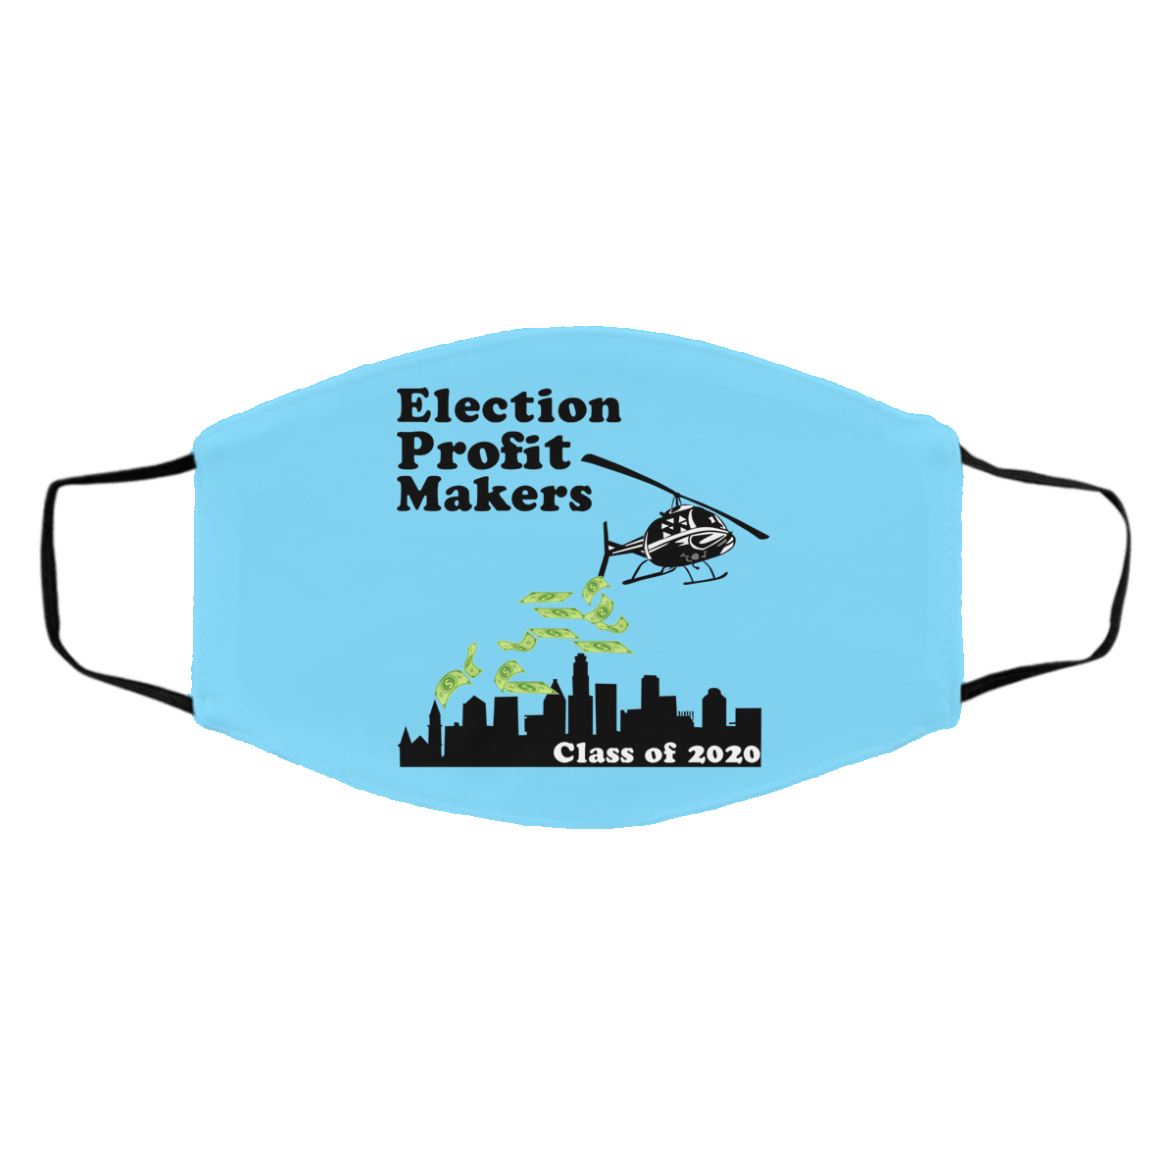 Election Profit Makers Class Of 2020 Face Mask 1274-13176-89726796-59064 - Tee Ript